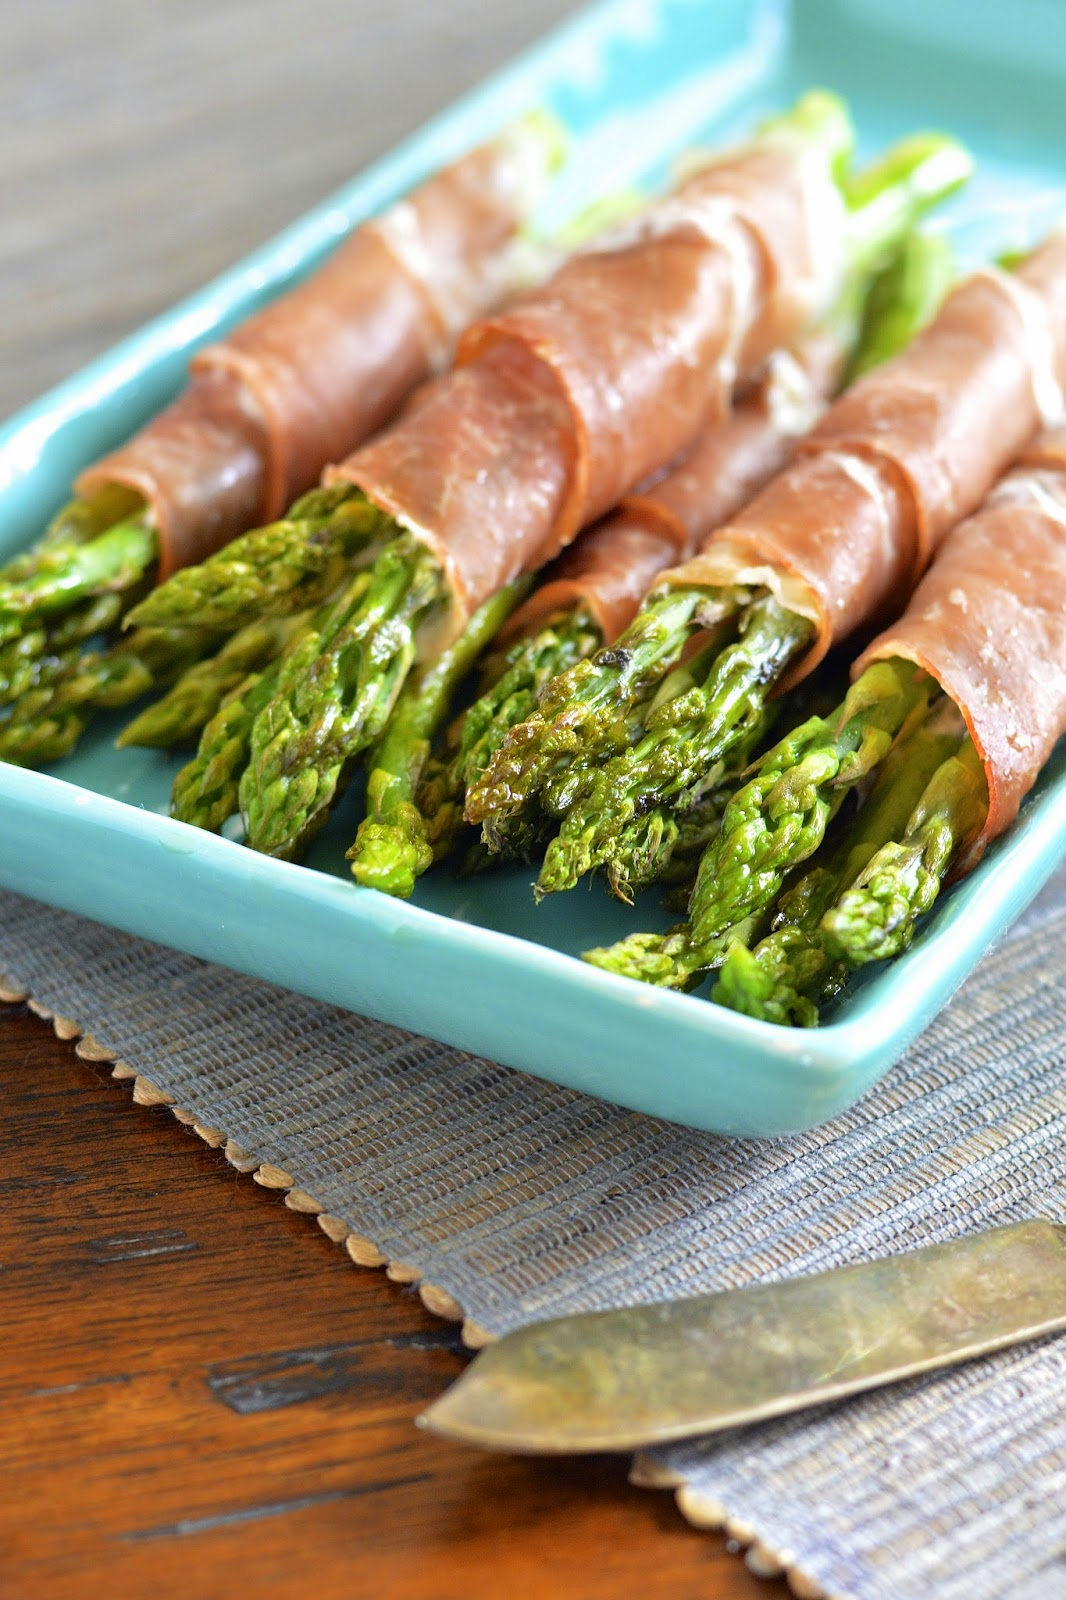 Bundles of asparagus wrapped in prosciutto, creamy goat cheese and a touch of garlic.